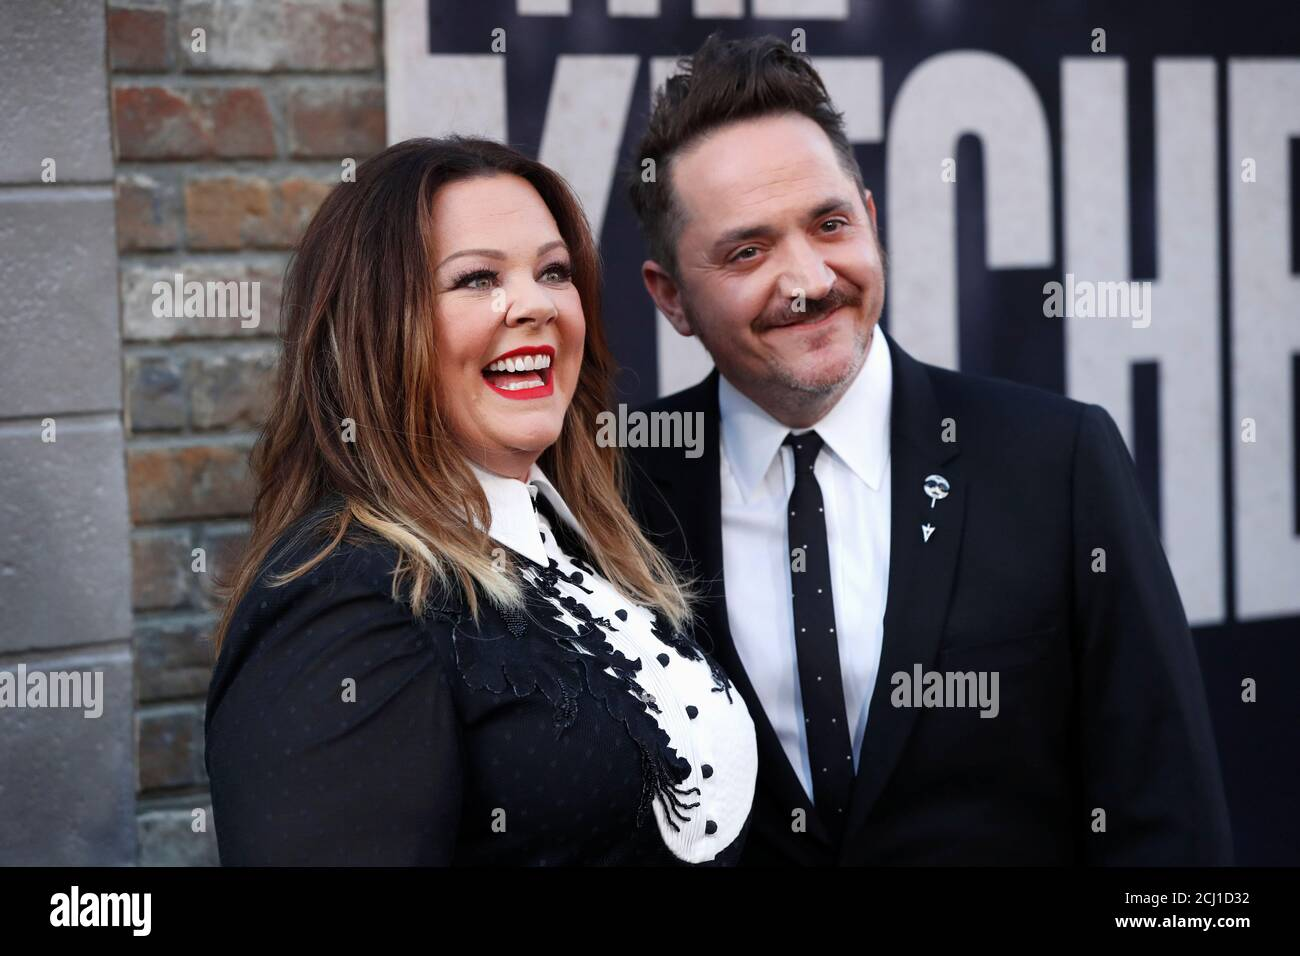 Cast Member Melissa Mccarthy Attends The Premiere For The Movie The Kitchen With Husband Benjamin Falcone In Los Angeles California U S August 5 2019 Reuters Mario Anzuoni Stock Photo Alamy